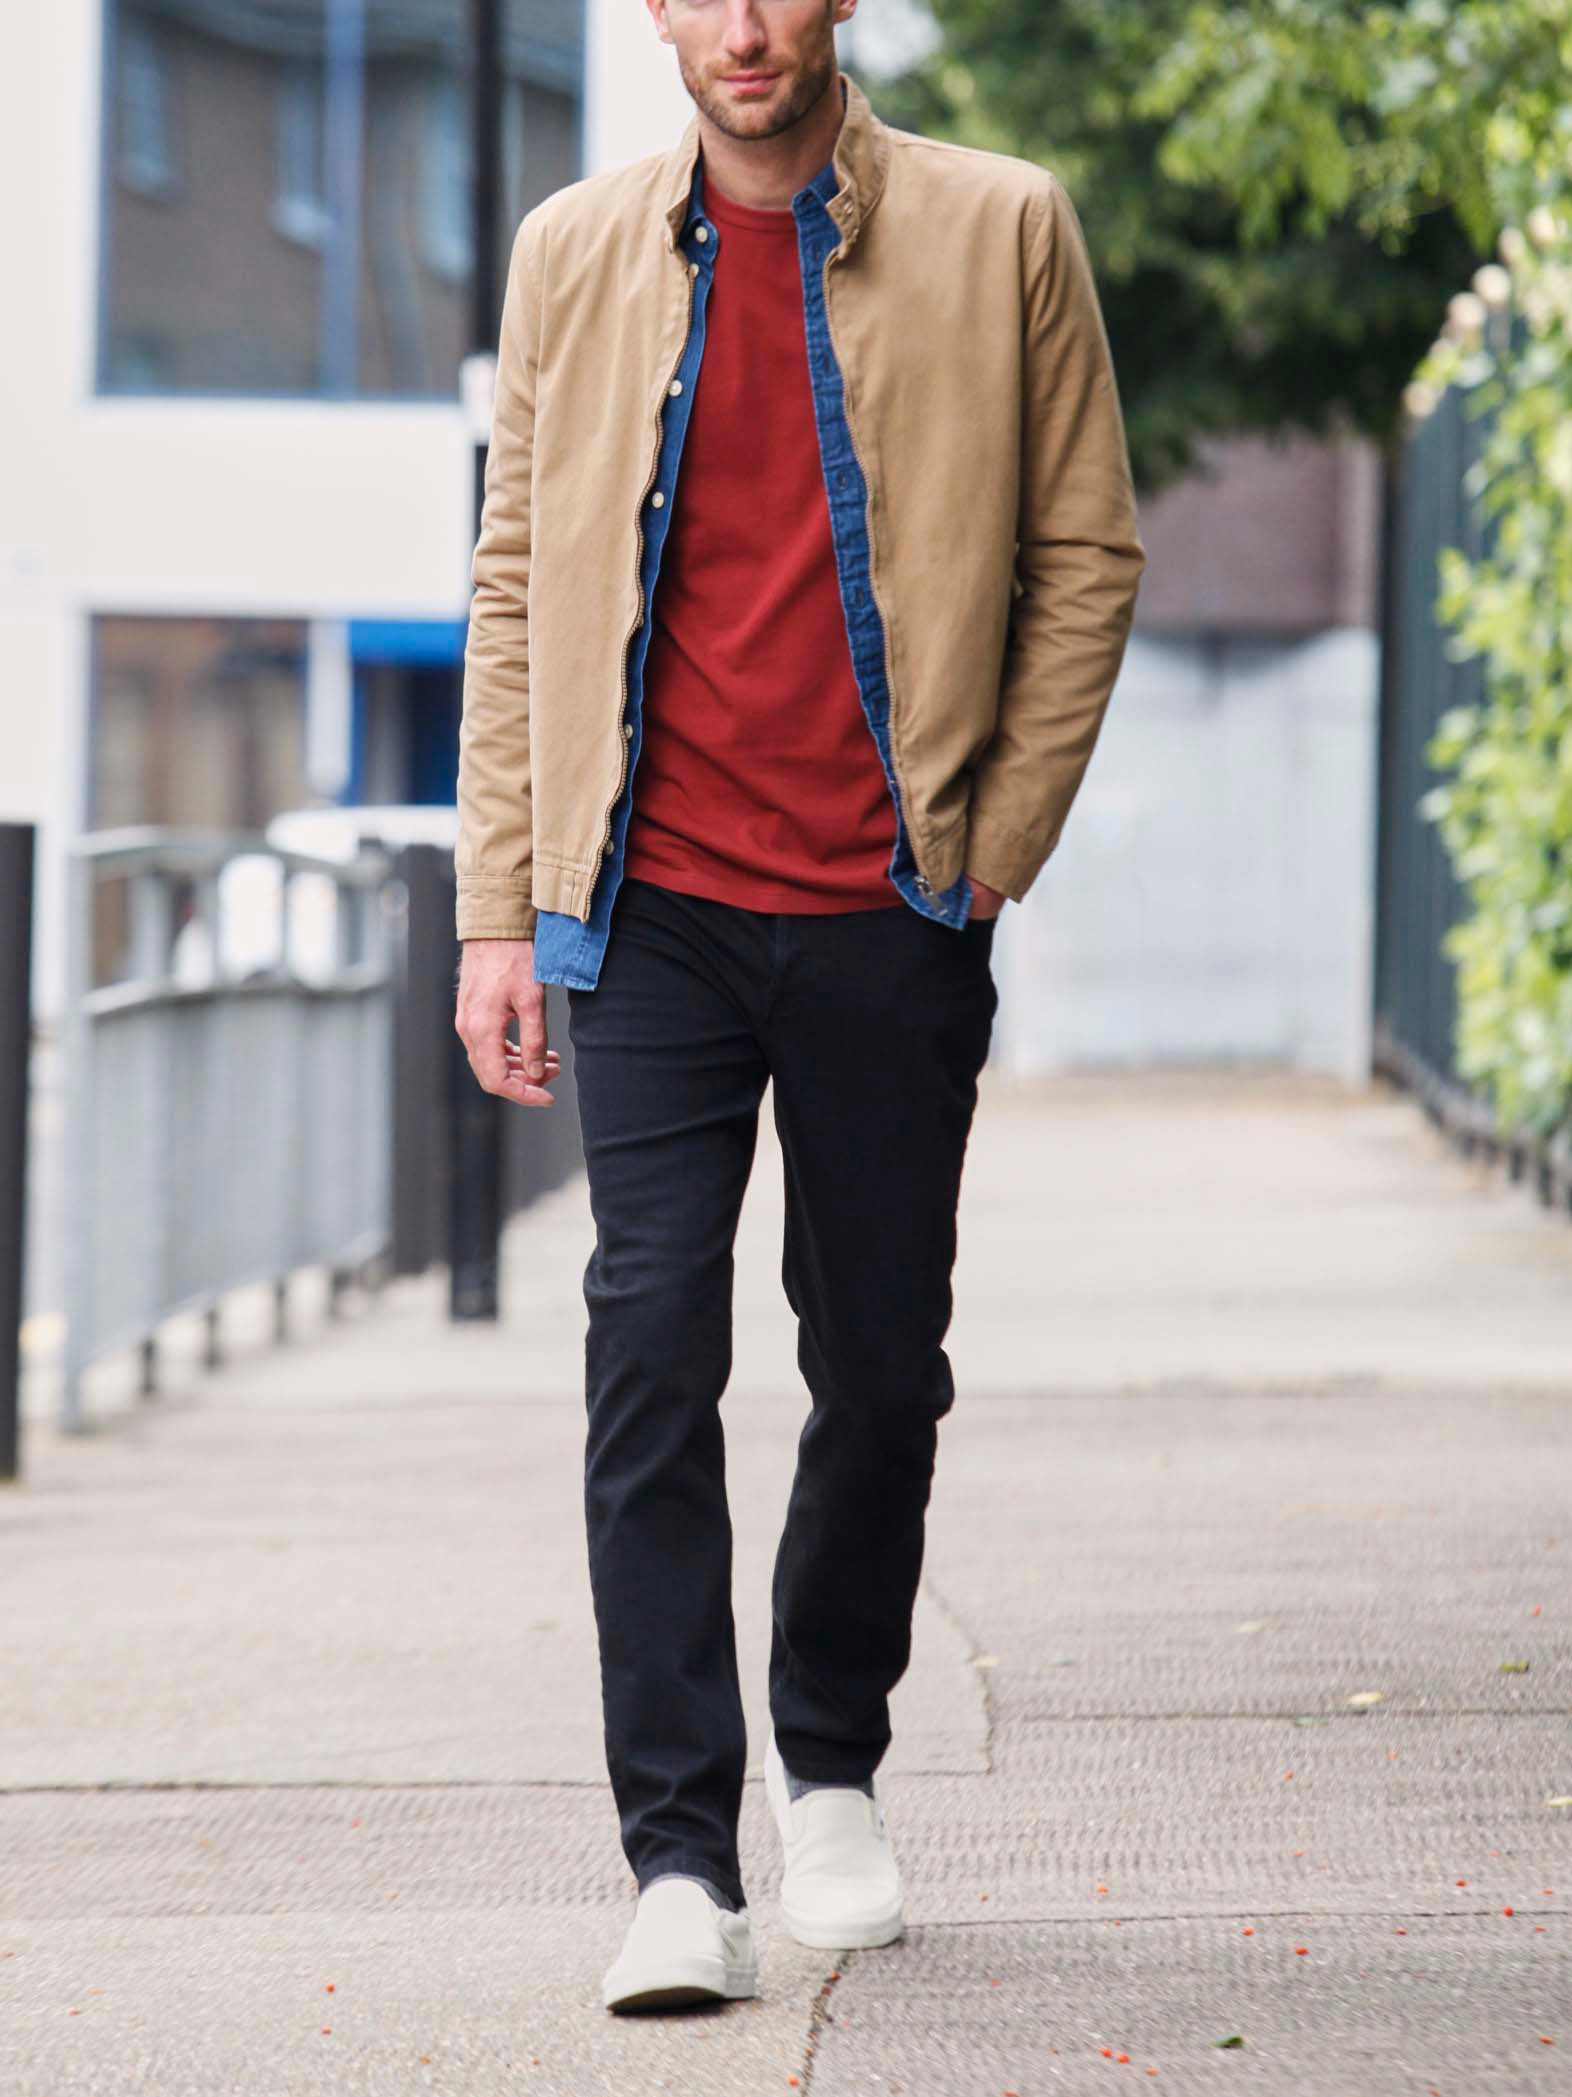 Men's outfit idea for 2021 with harrington jacket, denim shirt, bold-colored crew neck t-shirt, black jeans, plimsolls. Suitable for spring and fall.